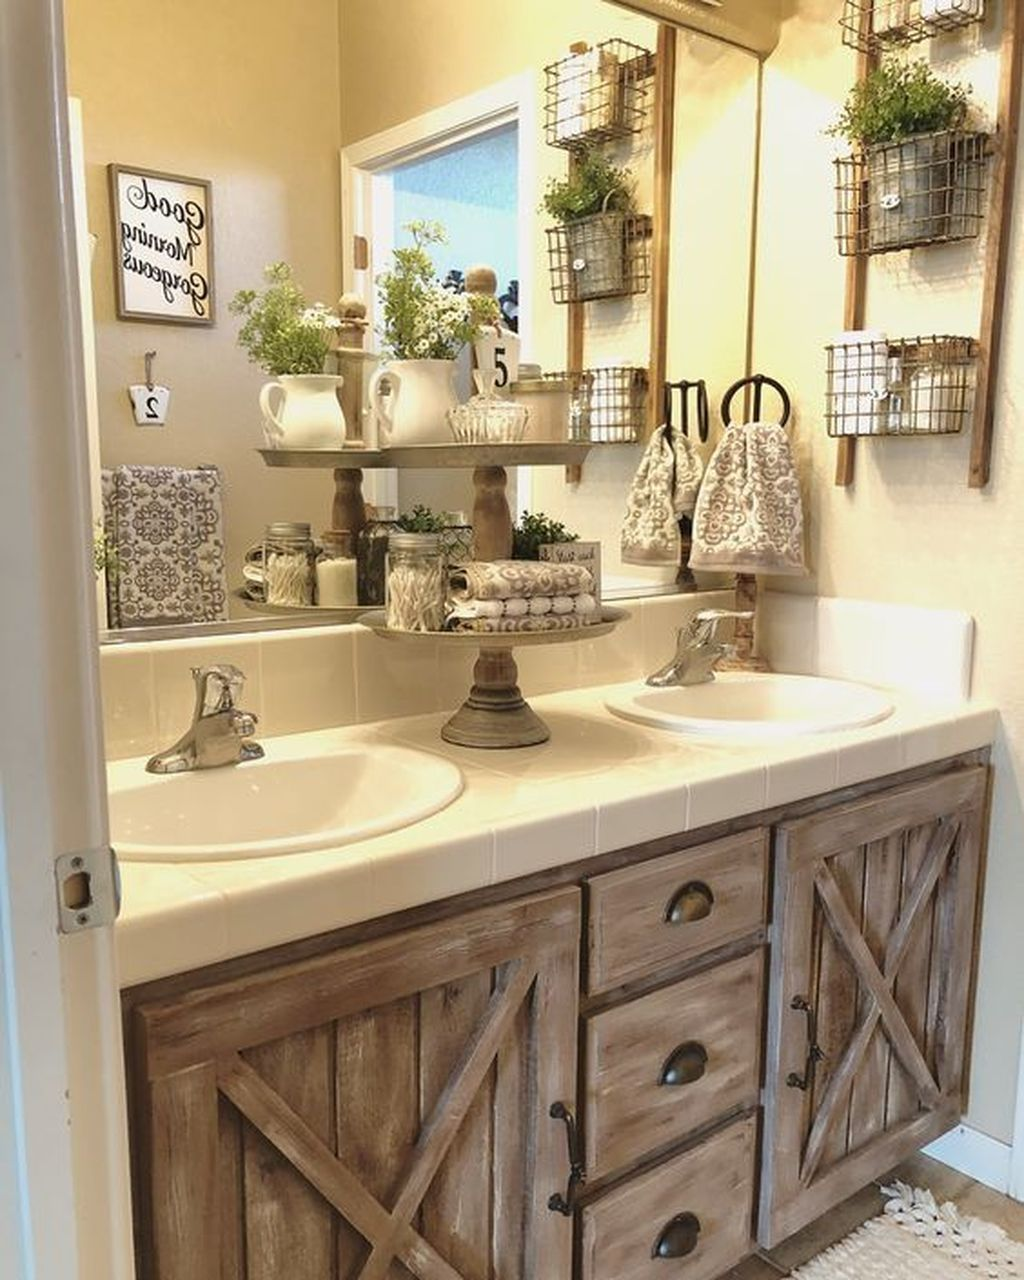 Decorative Rustic Storage Projects For Your Bathroom: The Farmhouse Bathroom Has A Few Points Greater Than Rustic And Also Farm-inspired By Numerous